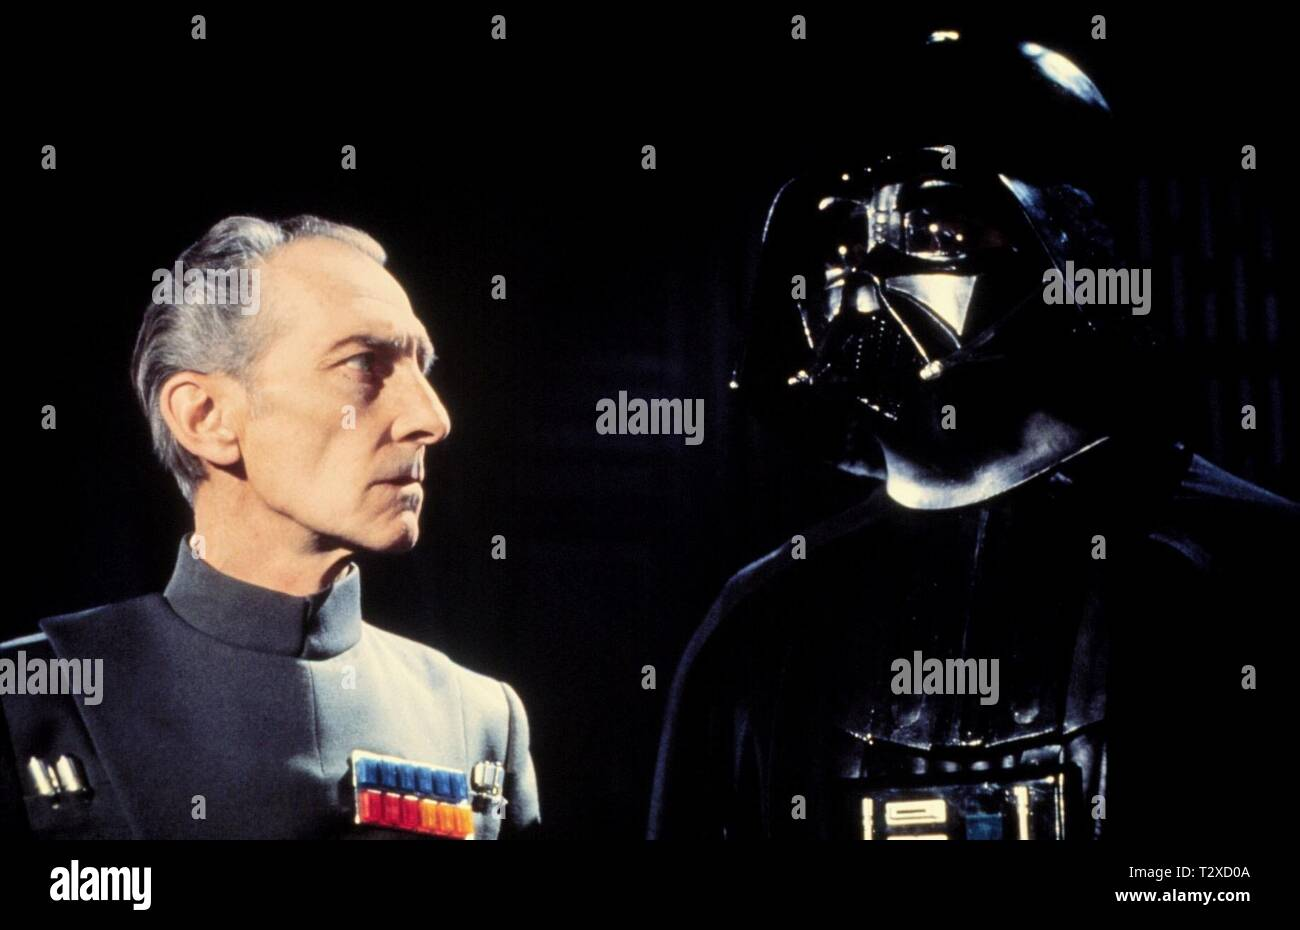 Peter Cushing David Prowse Star Wars Episode Iv A New Hope 1977 Stock Photo Alamy